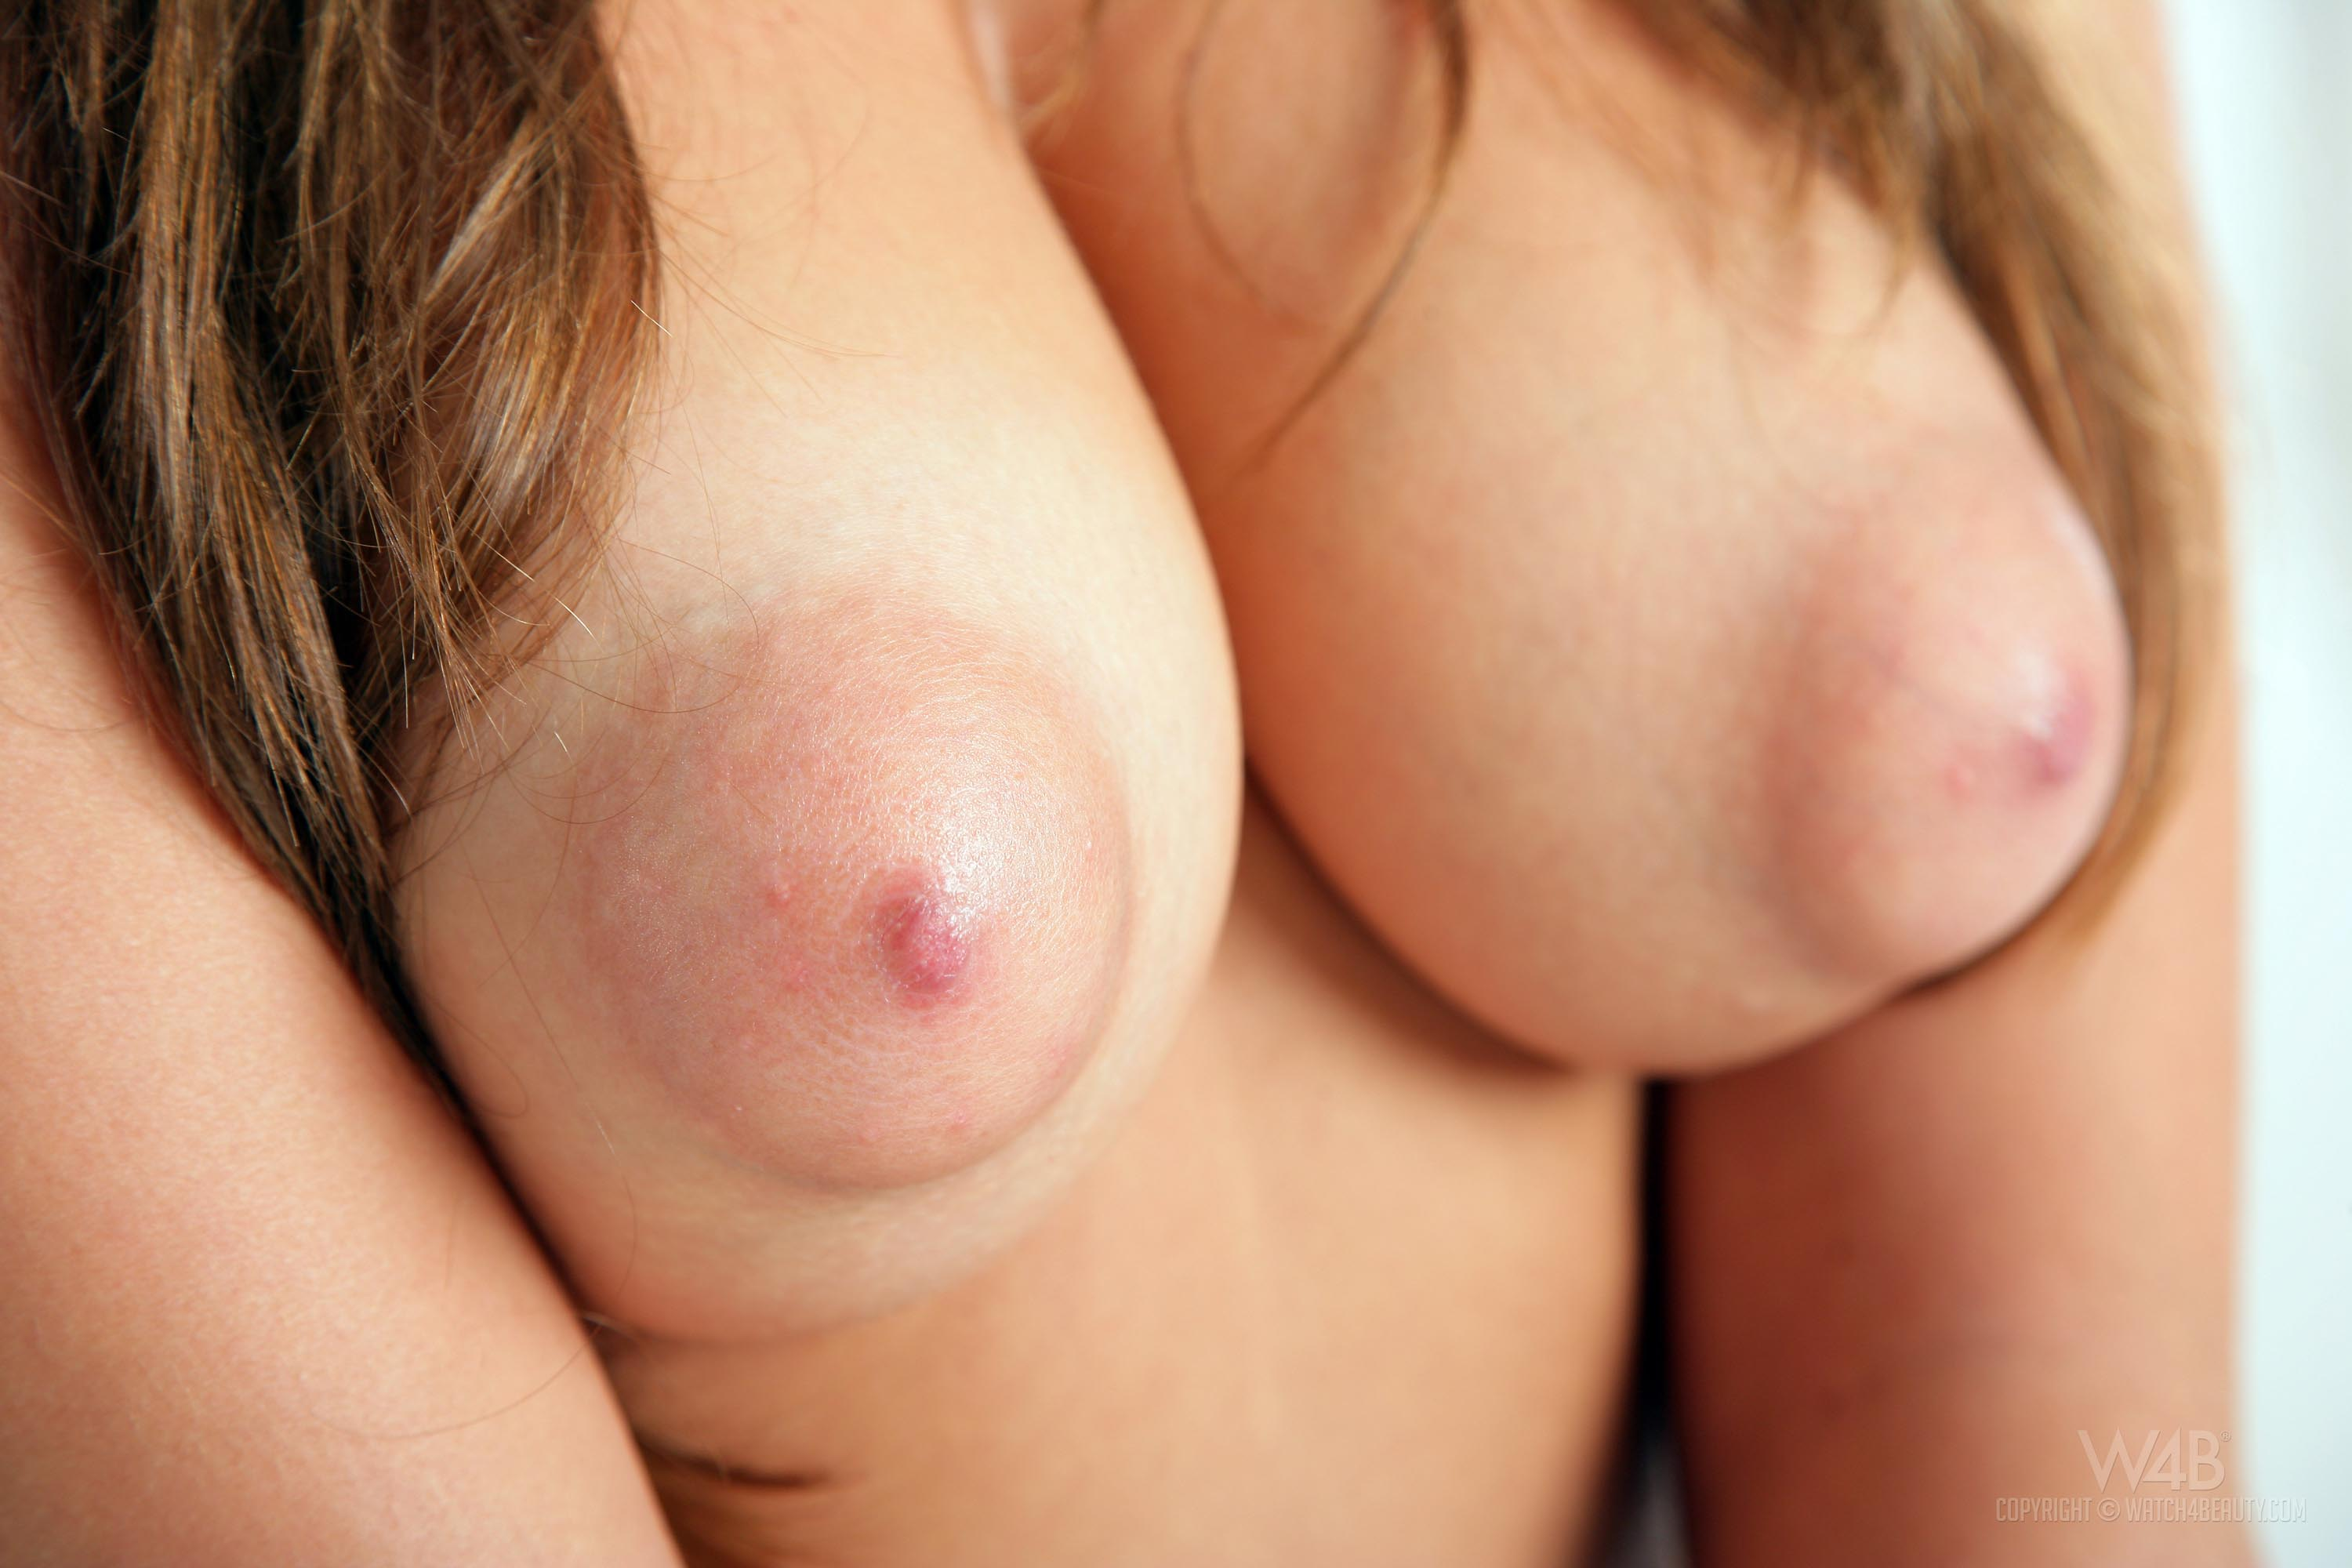 Big puffy tits nipples close up